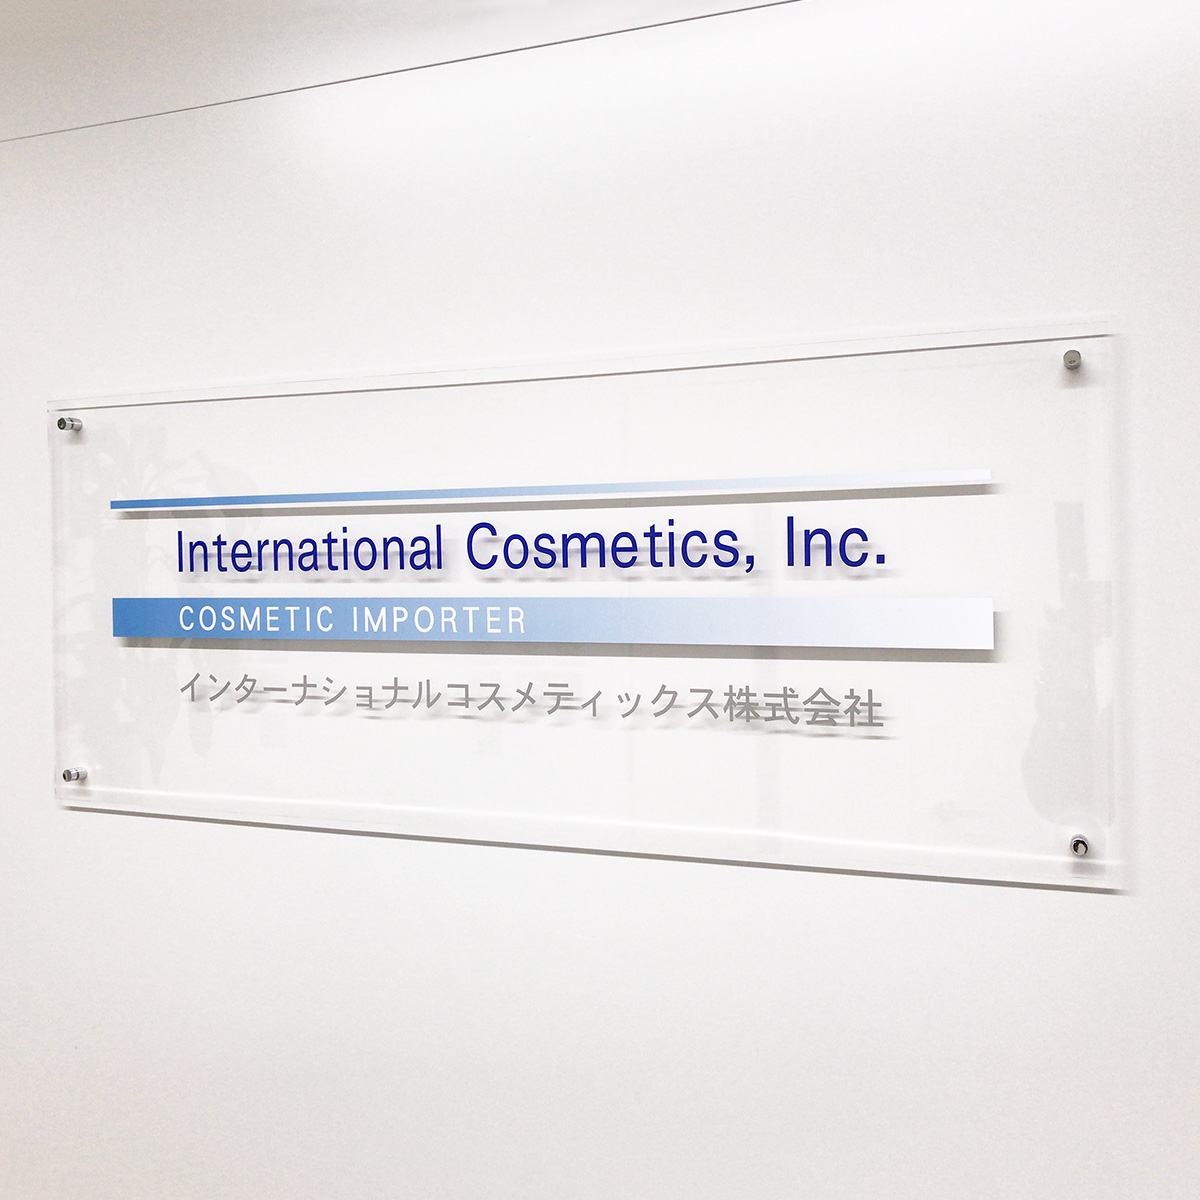 [Floor Sign] International Cosmetics, Inc.